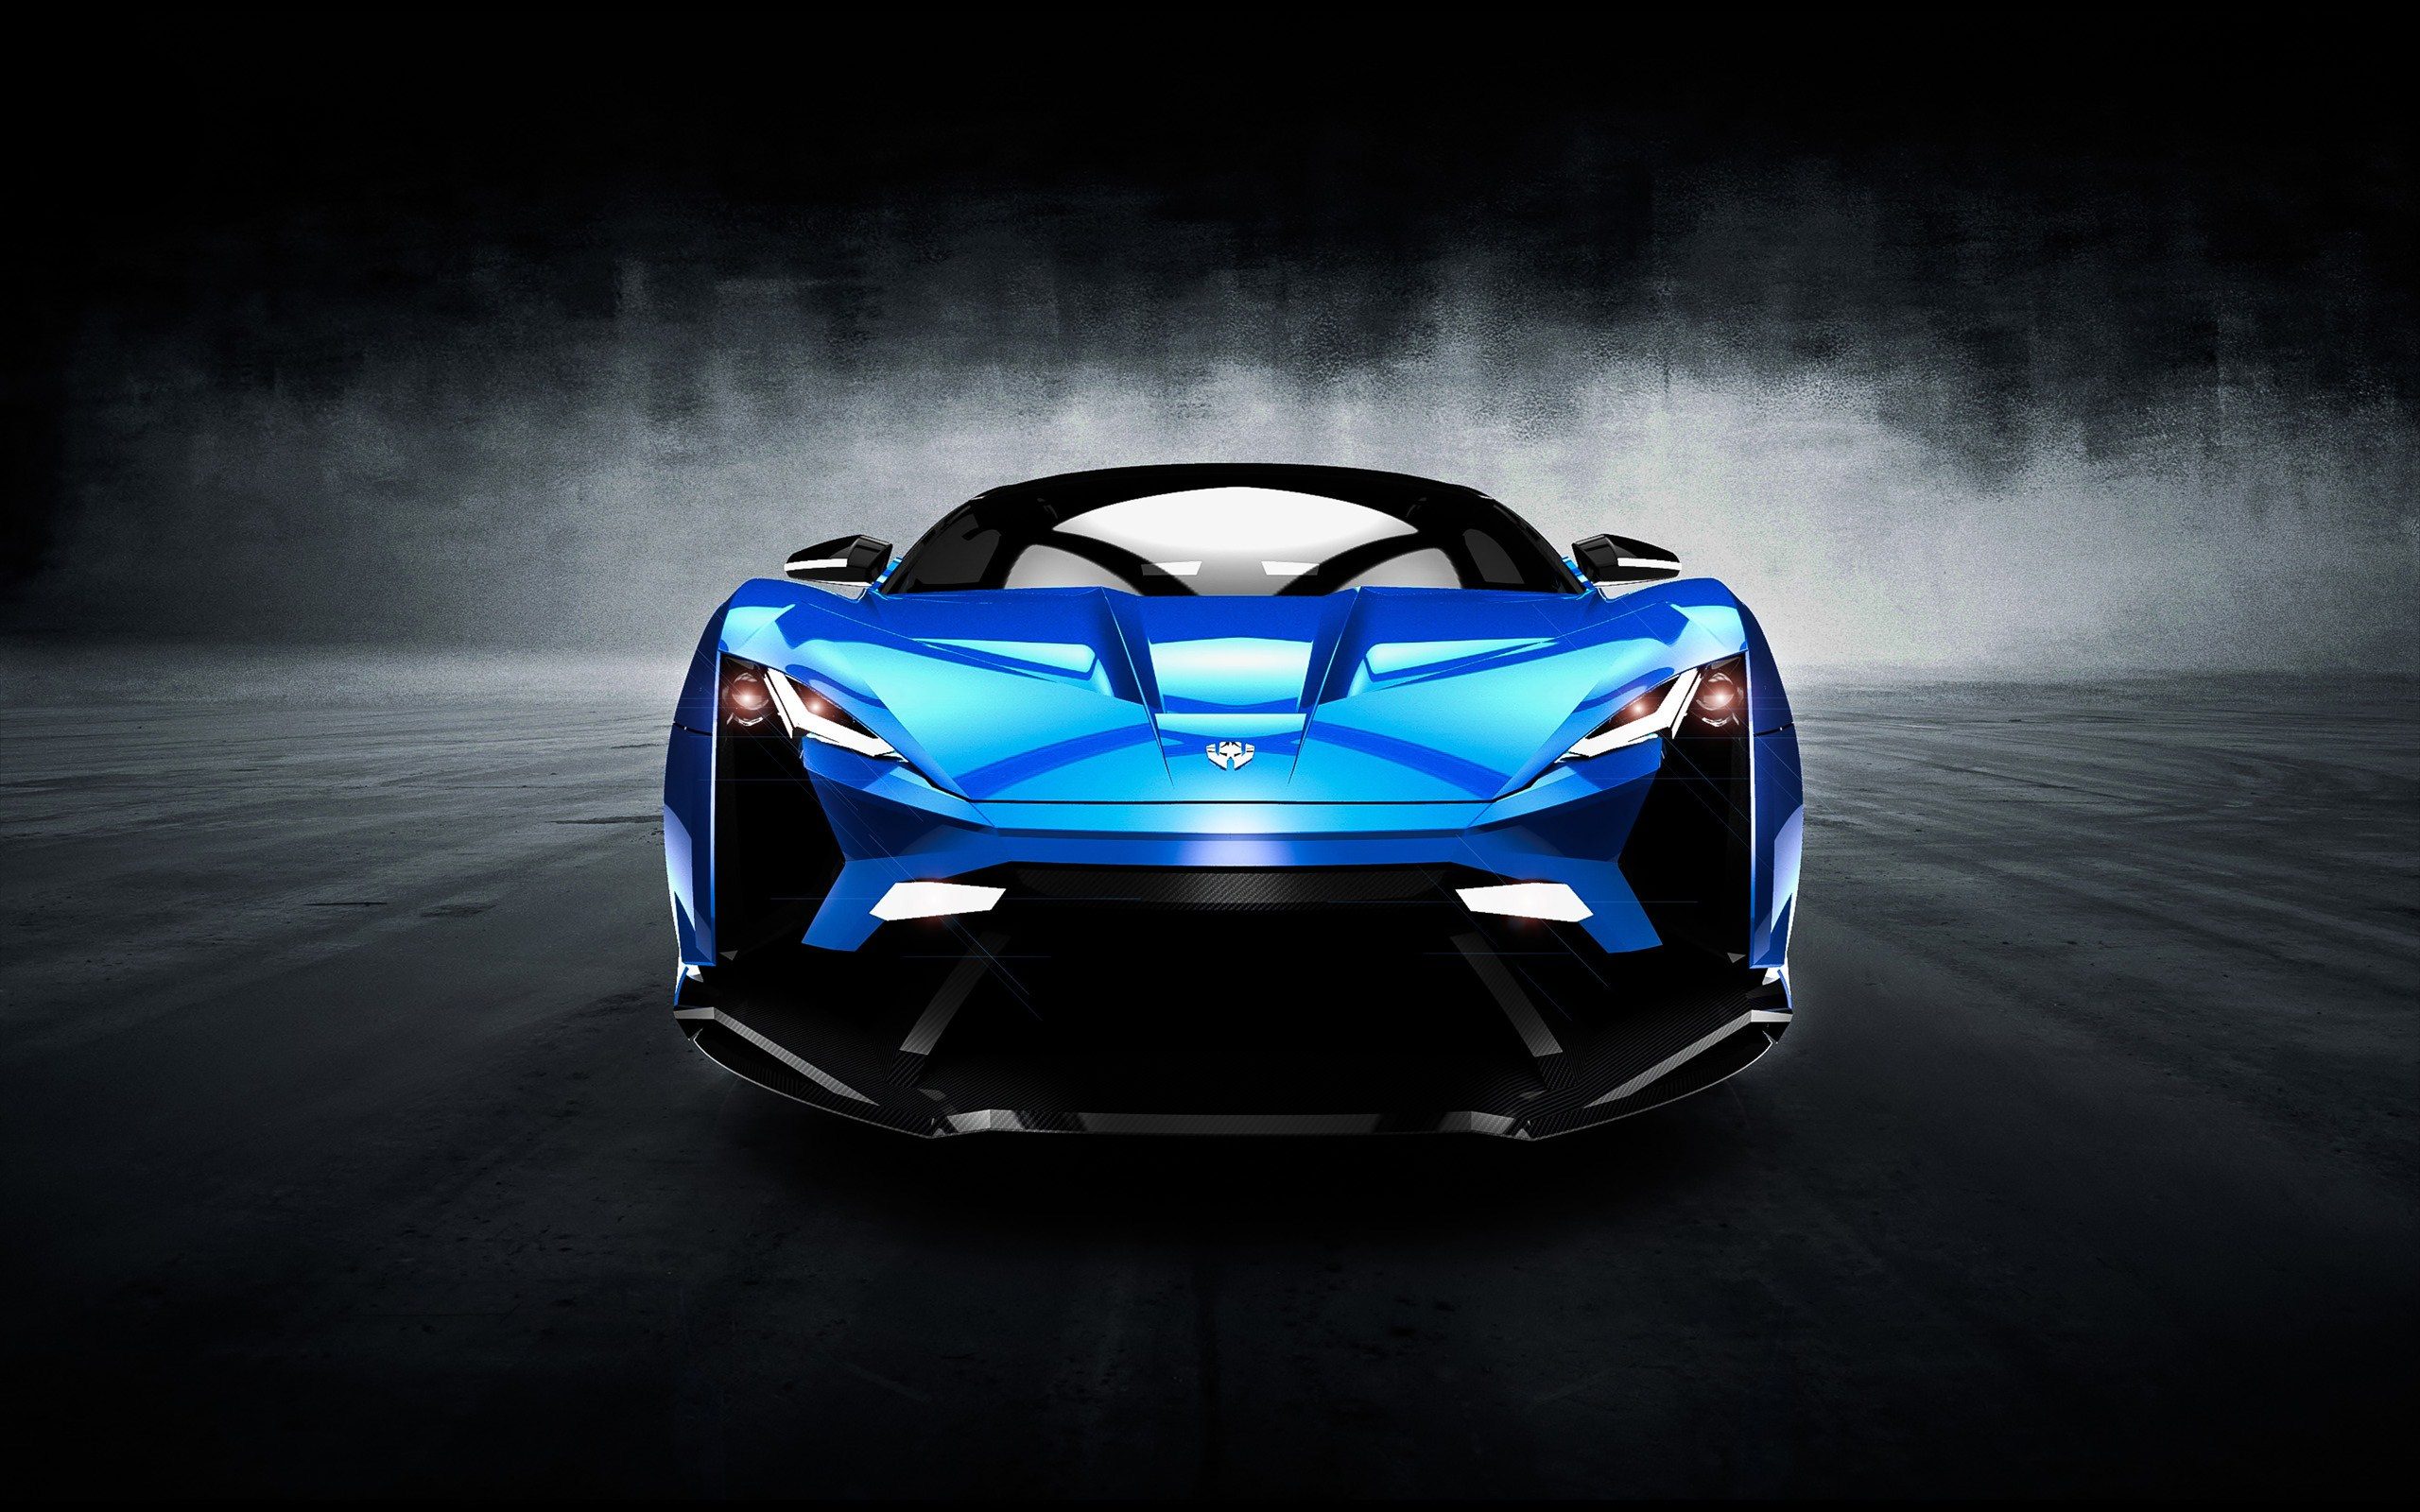 40 Lykan Hypersport Hd Wallpapers Background Images Wallpaper Abyss